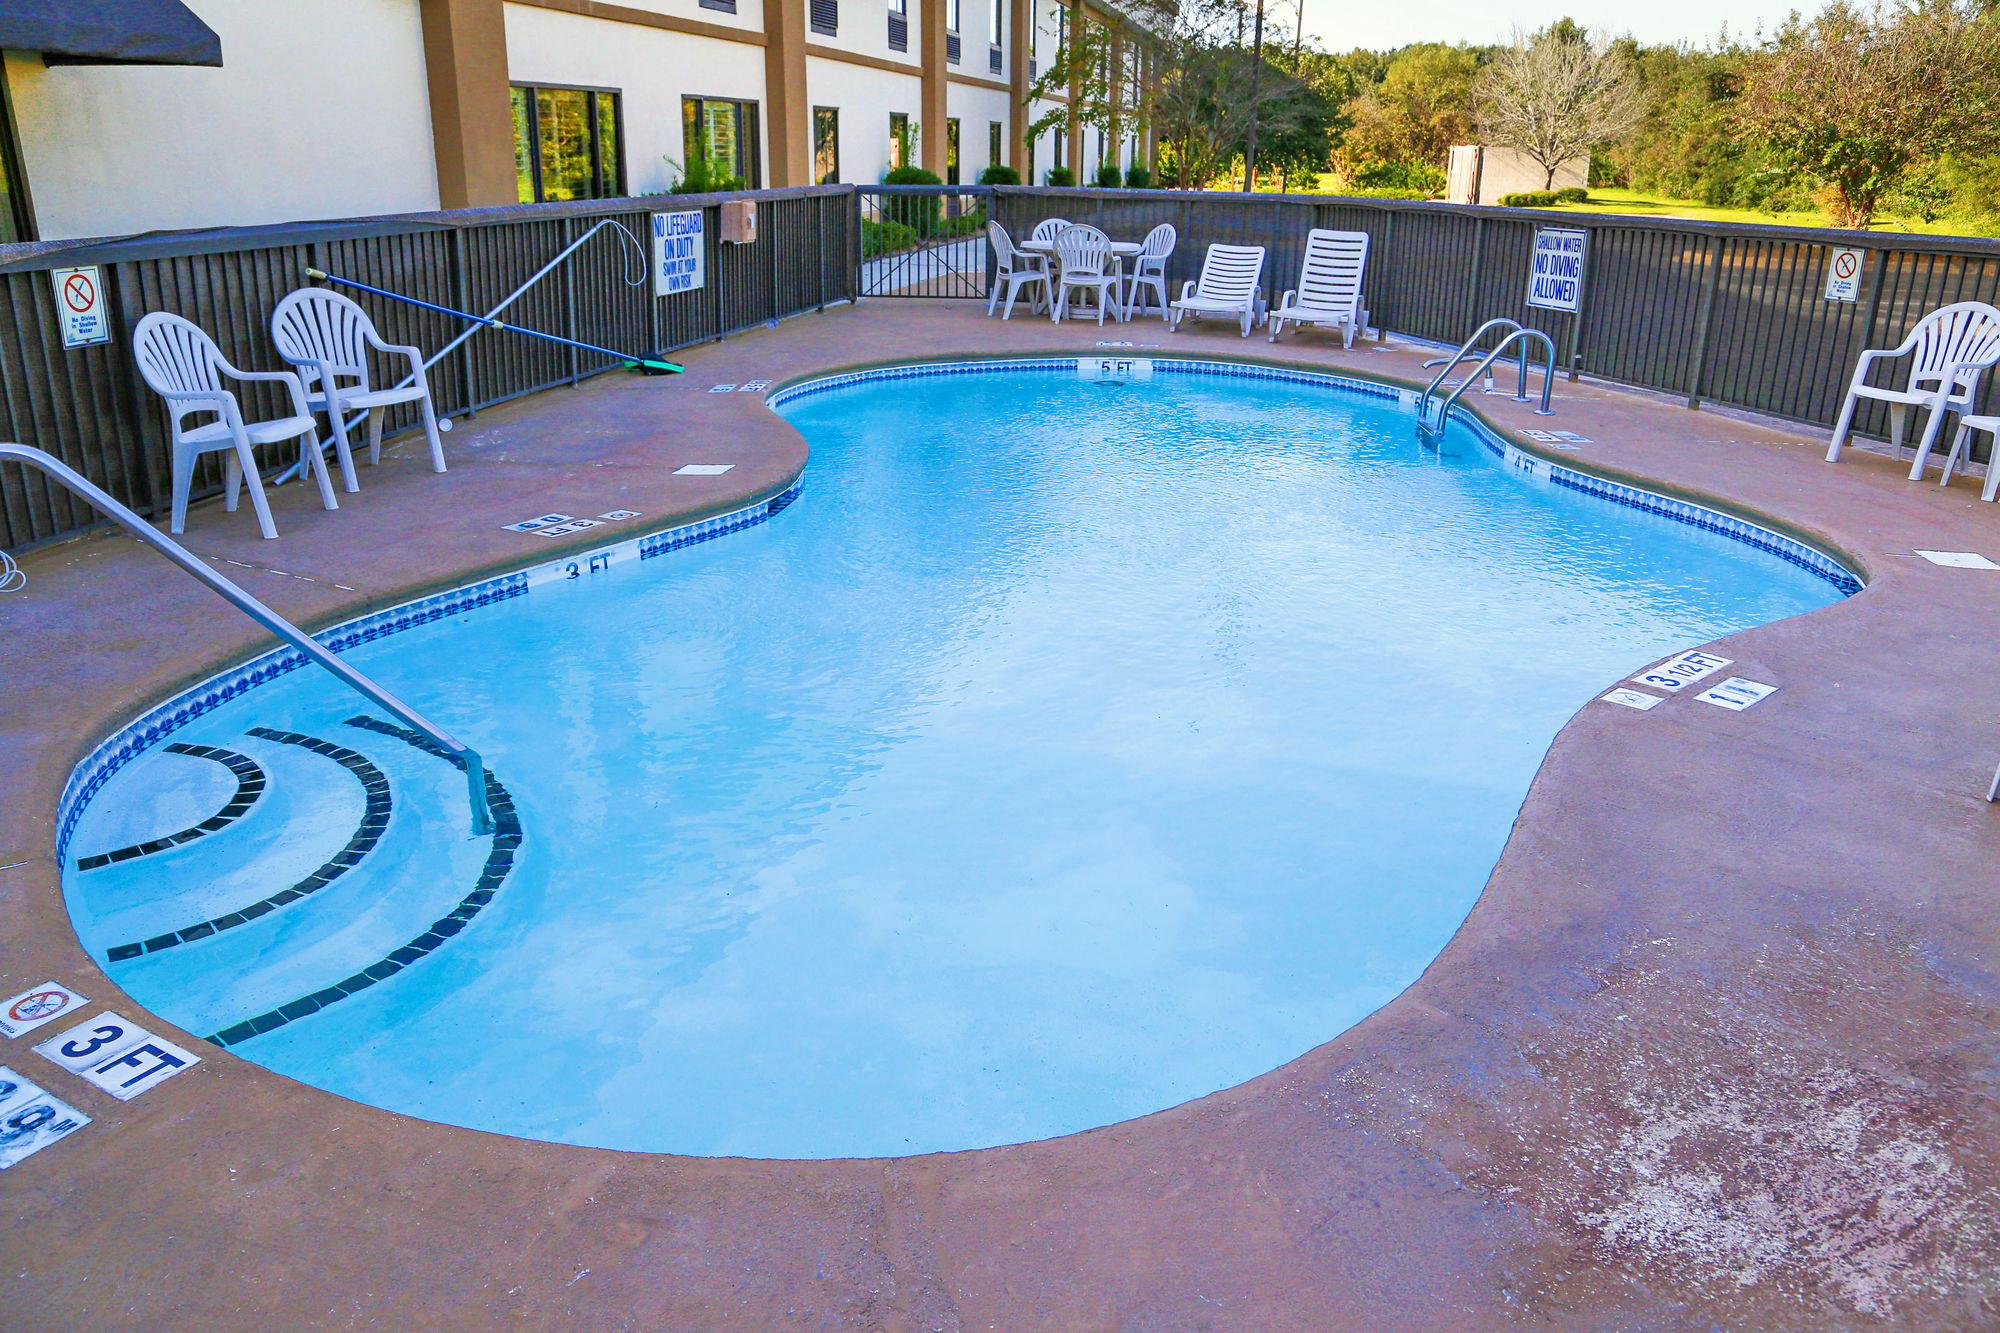 Red Roof Inn & Suites in Yemassee, SC